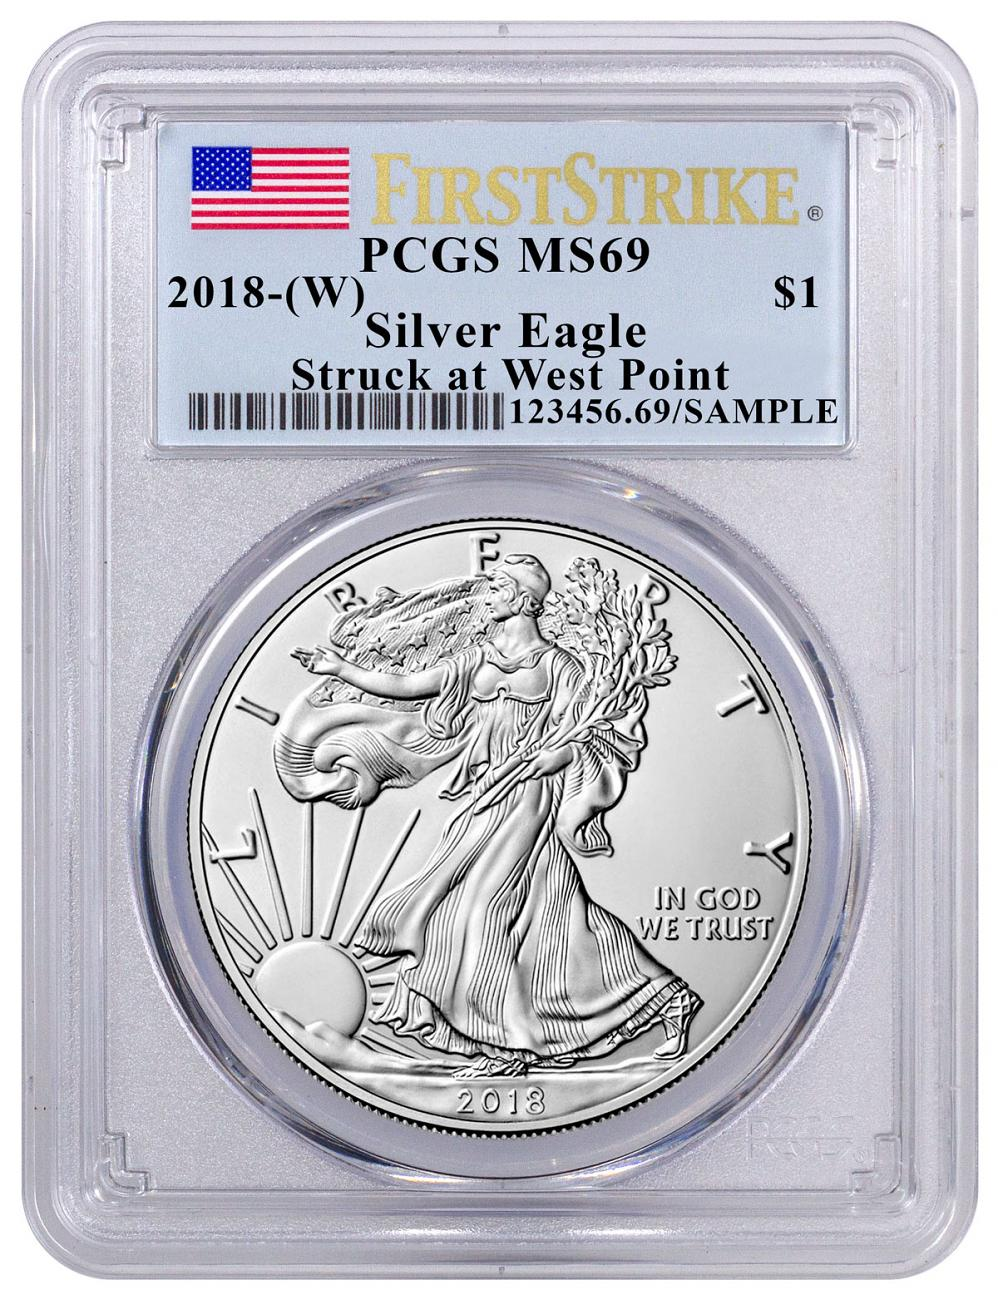 2018-(W) American Silver Eagle Struck at West Point PCGS MS69 FS Flag Label